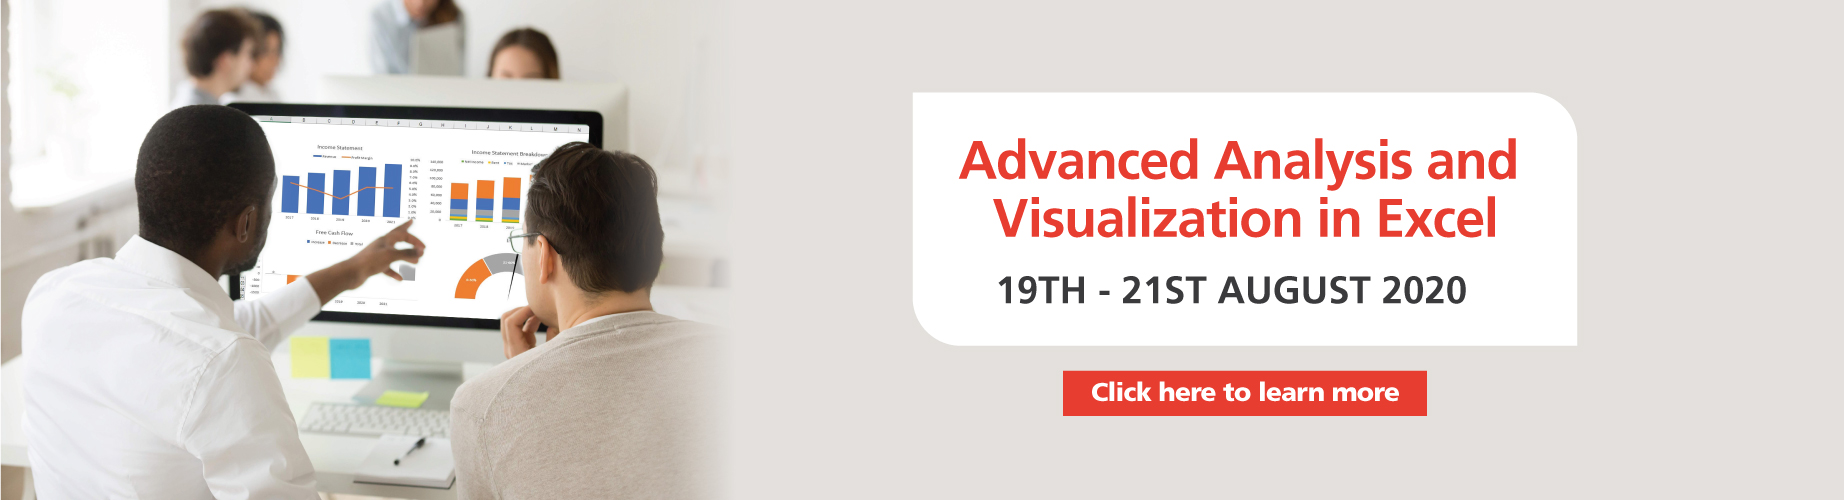 Advanced-Analysis-Visualization-in-Excel-banner